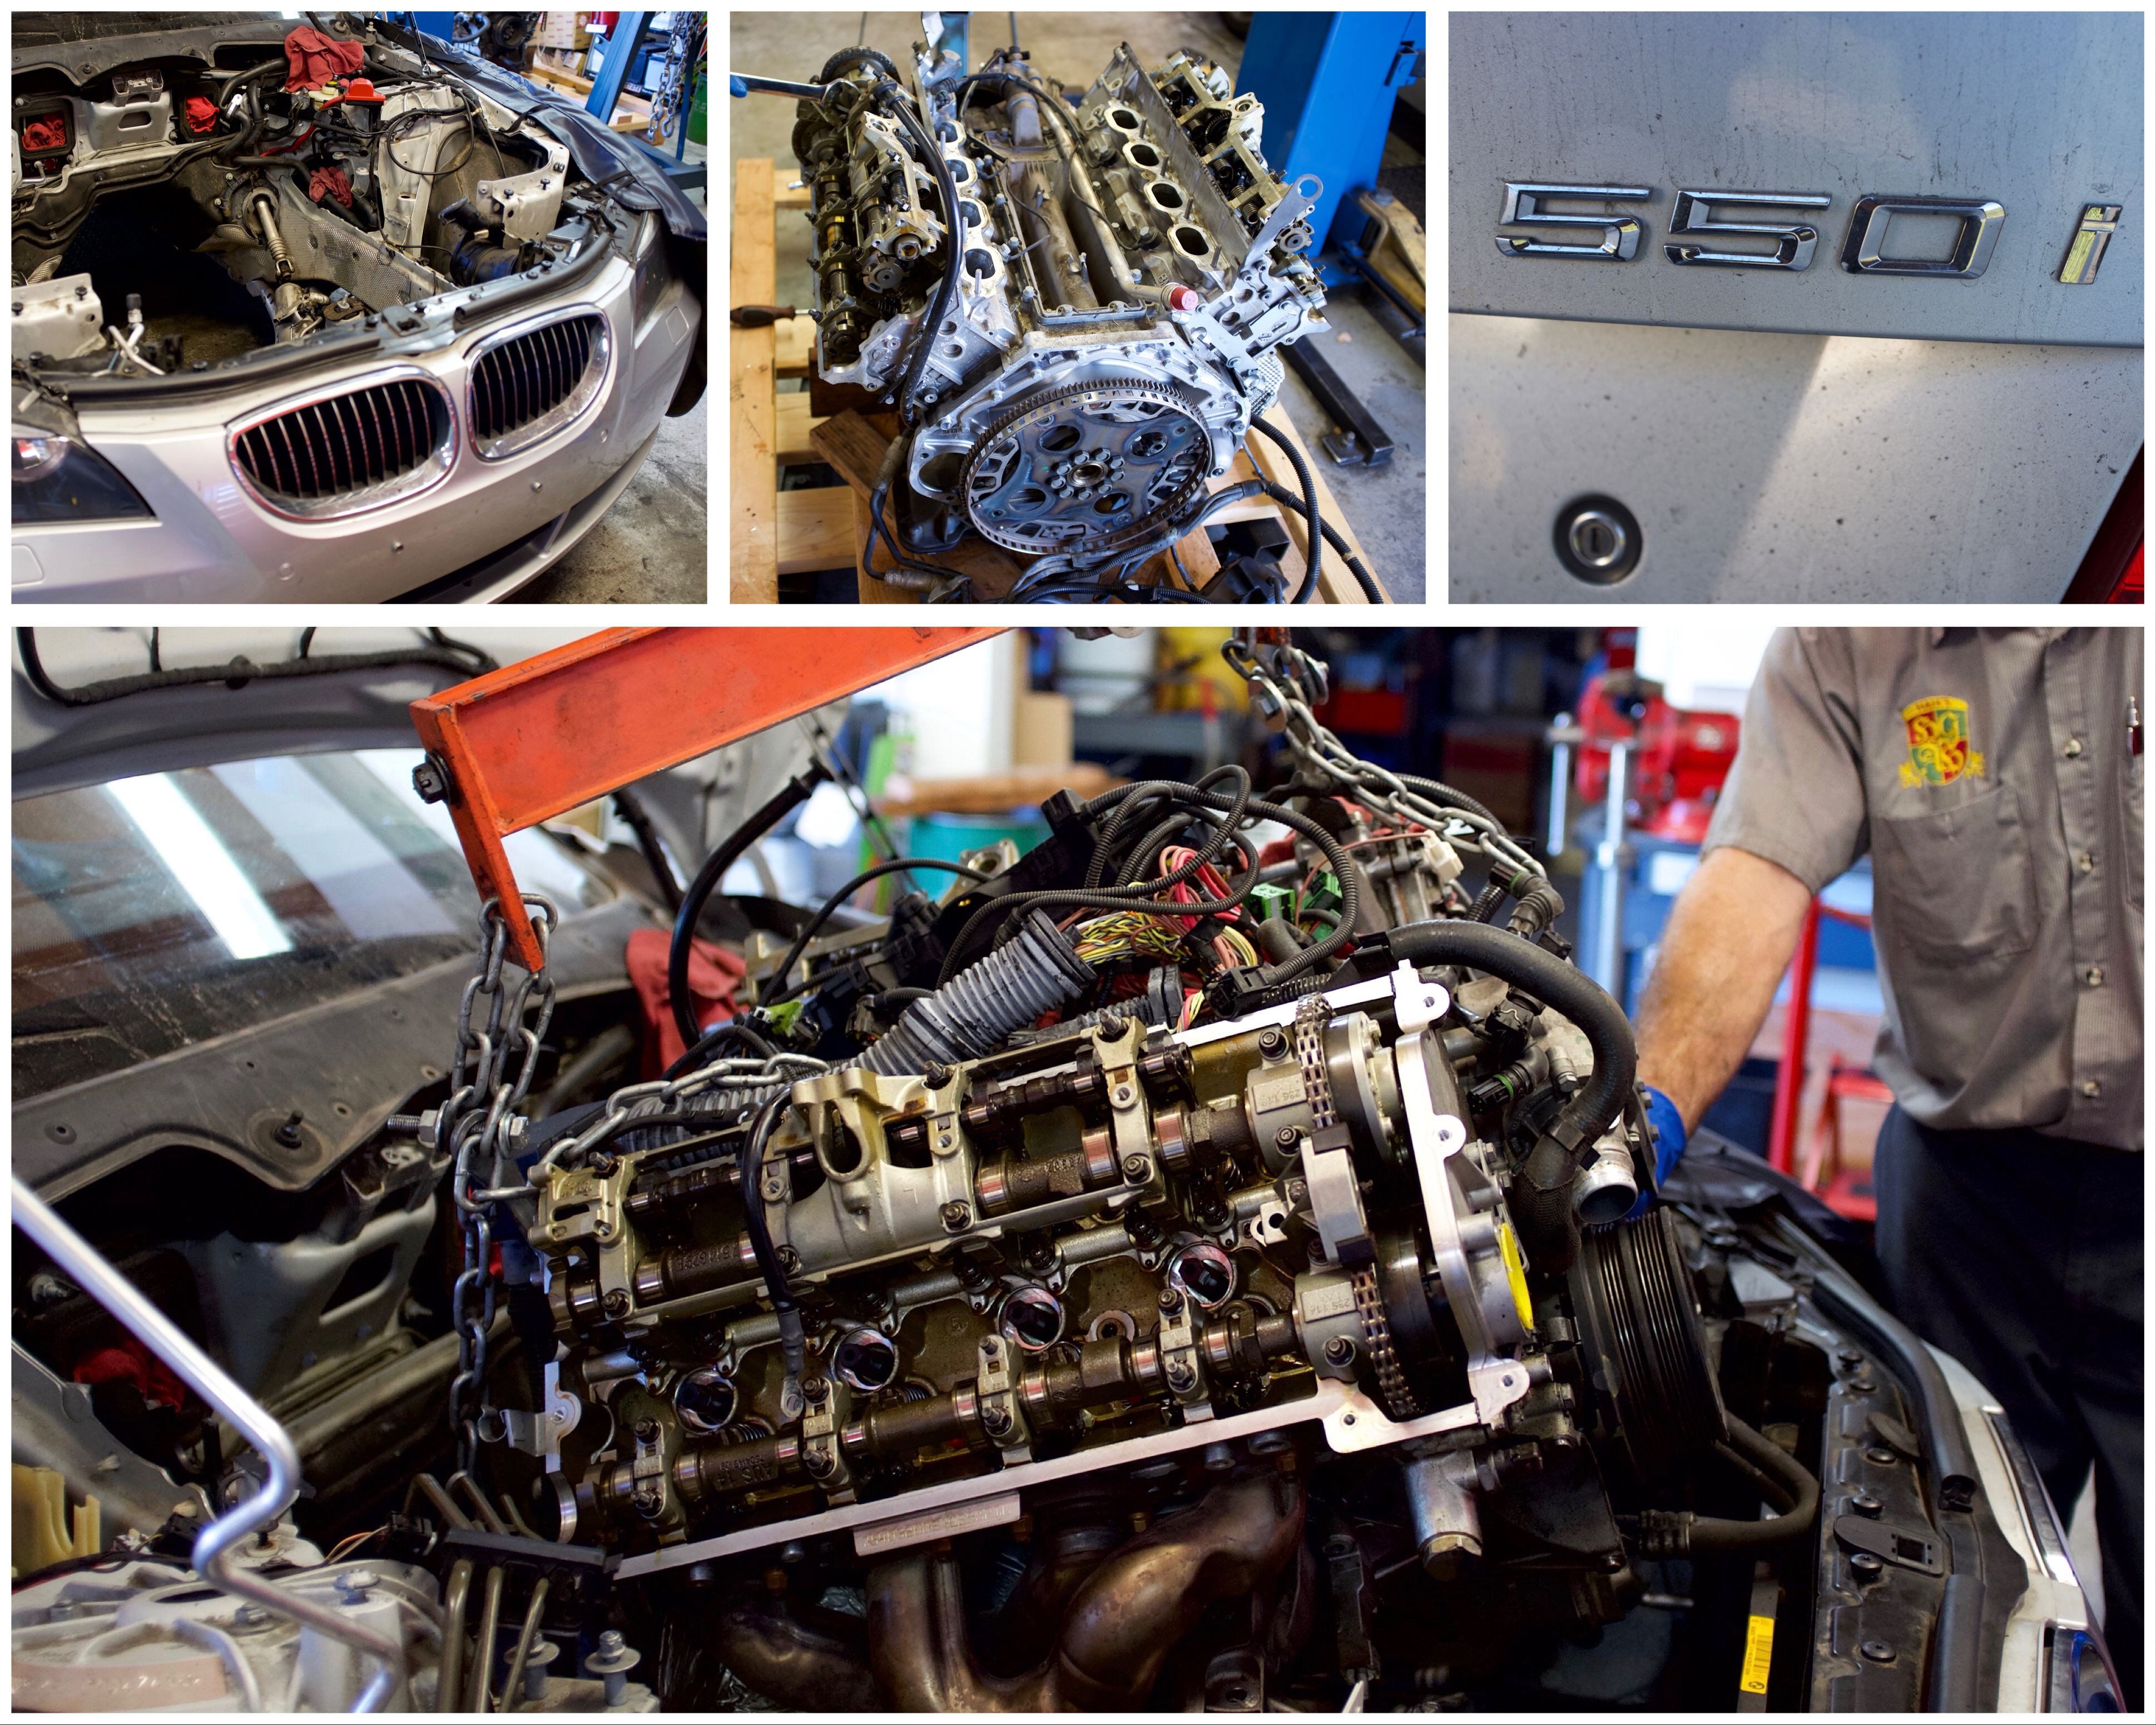 Removal of BMW engine at Haik's German Autohaus